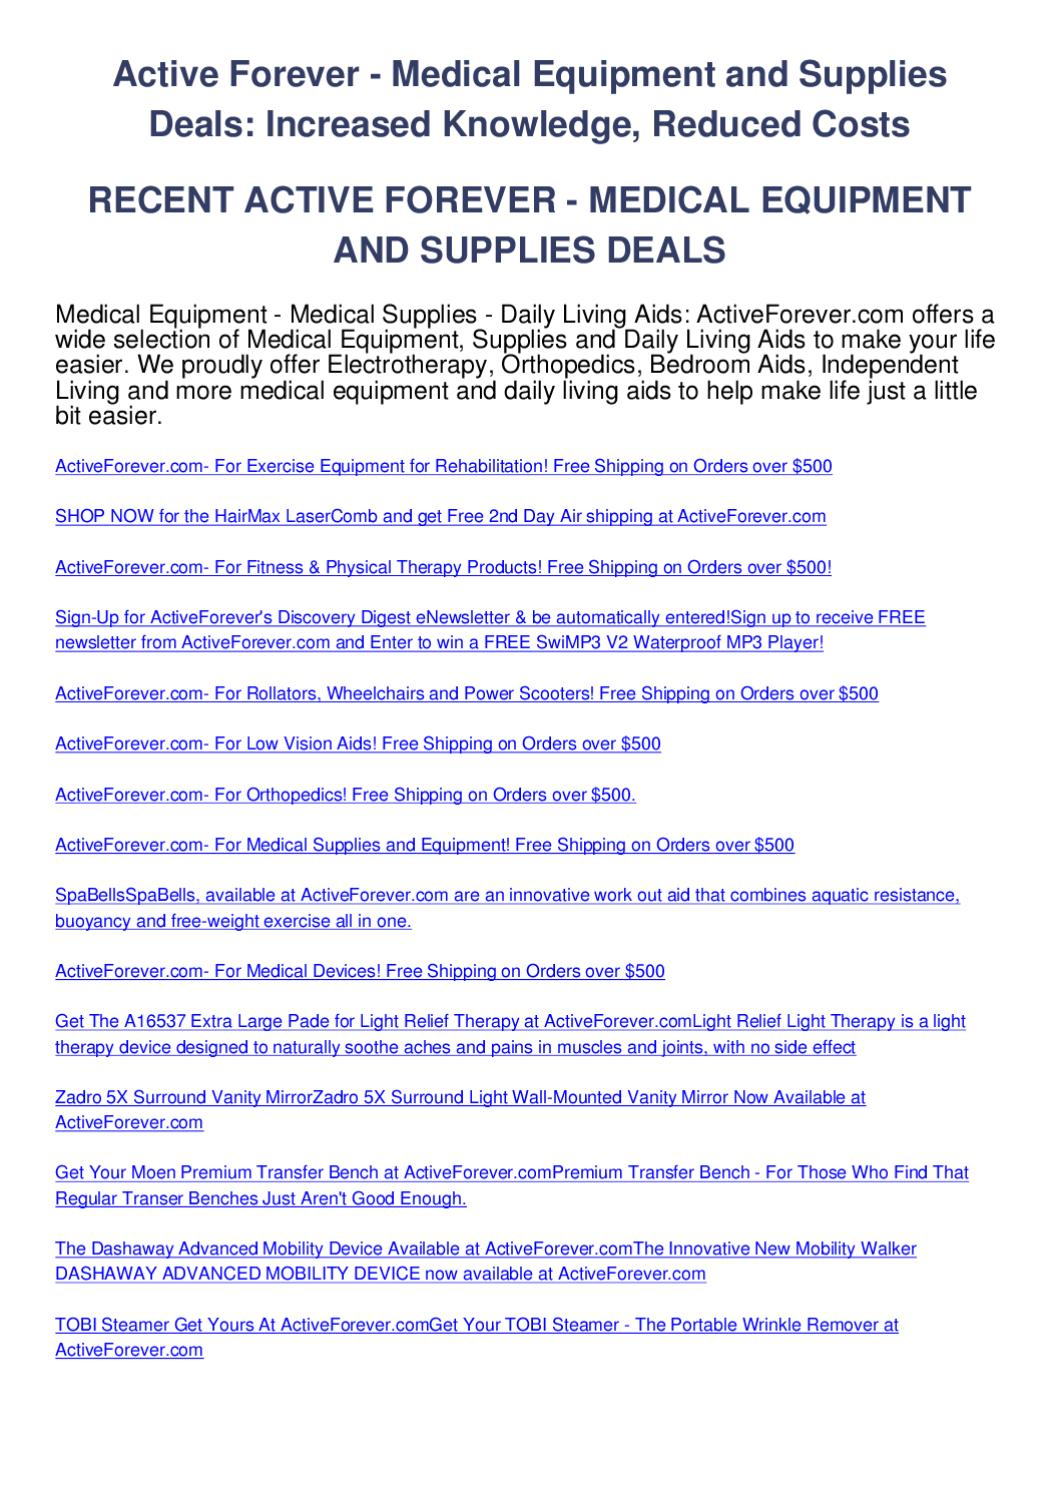 Active forever - medical equipment and supplies deals by